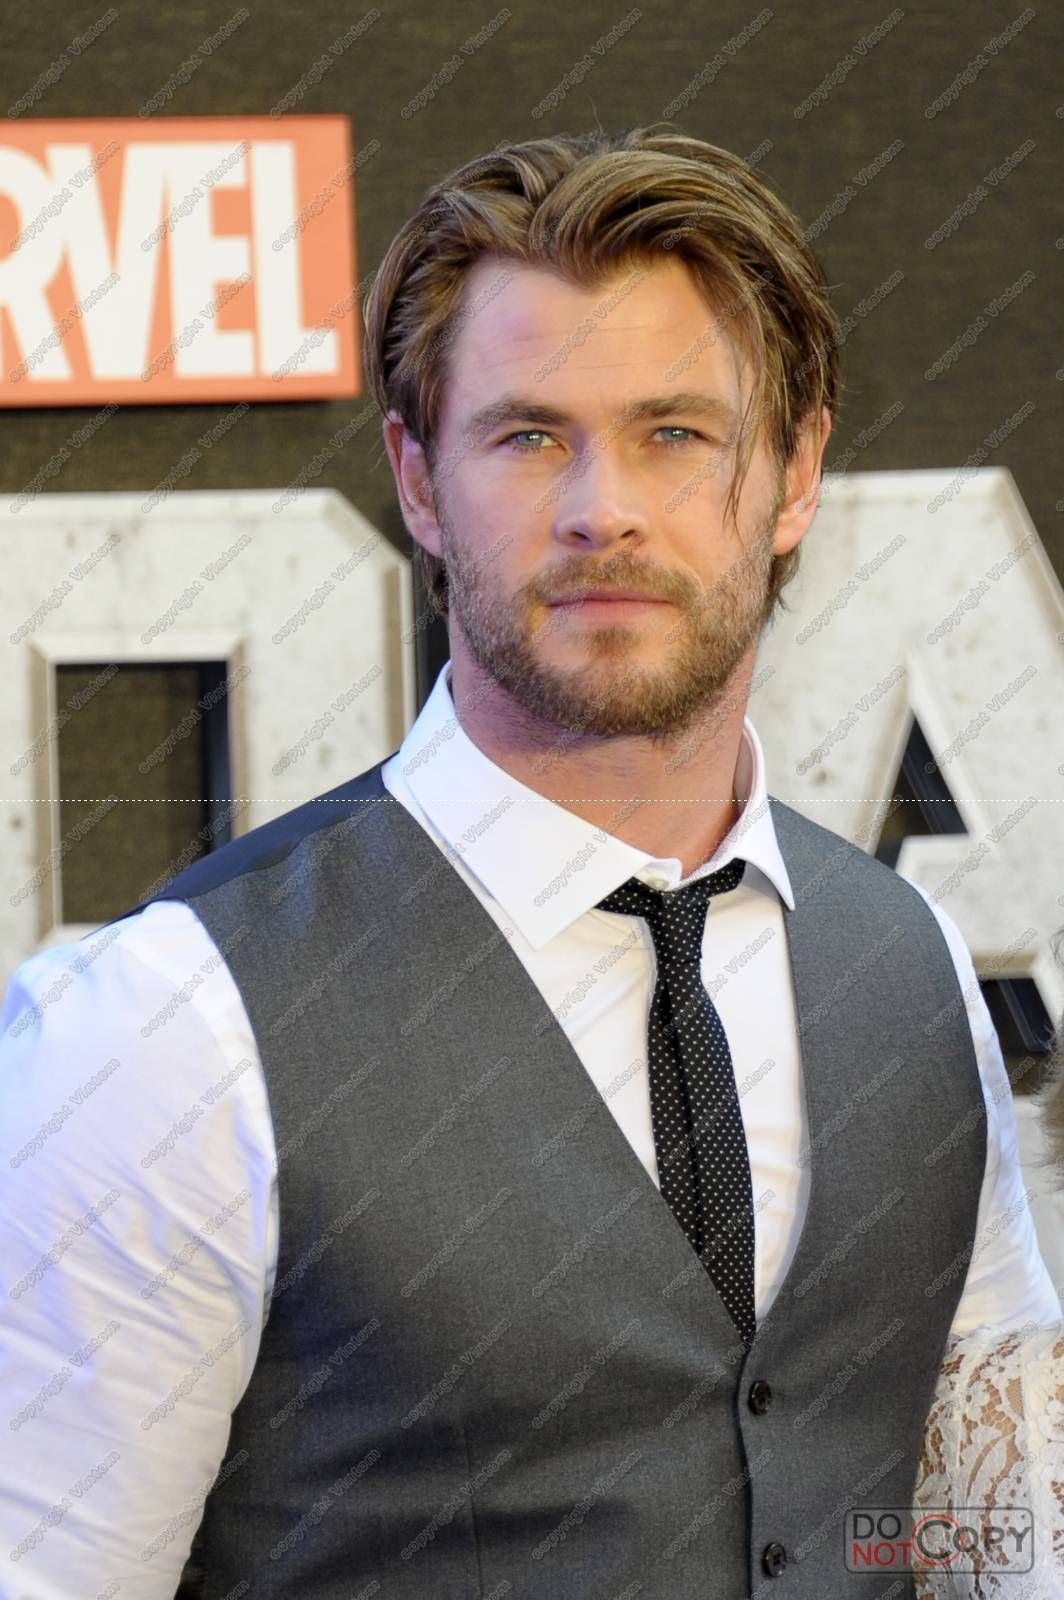 Chris Hemsworth Poster Picture Photo Print A2 A3 A4 7X5 6X4